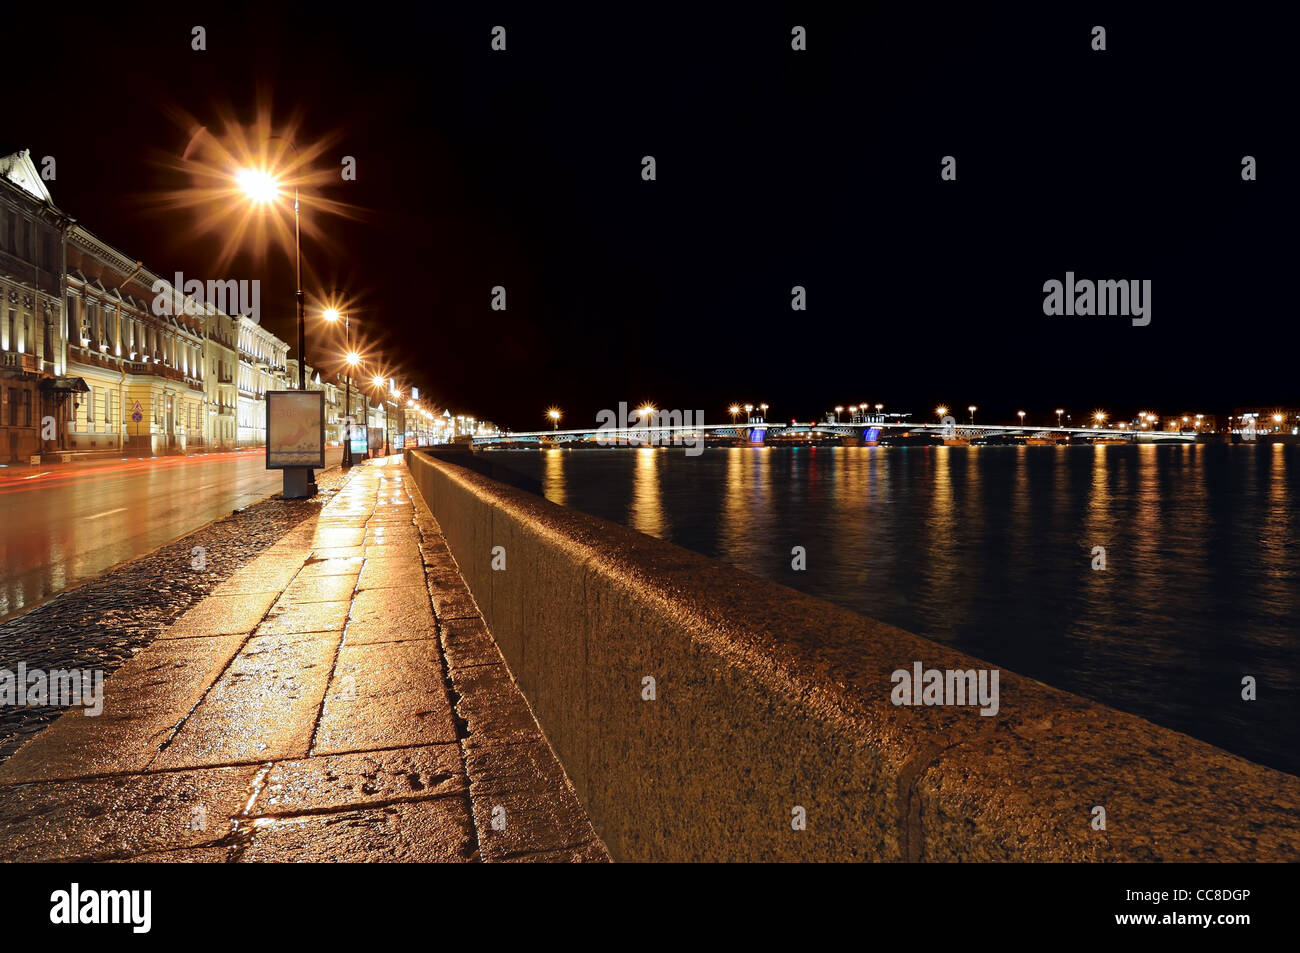 Night view of the Neva River and the historic buildings on its banks - Stock Image